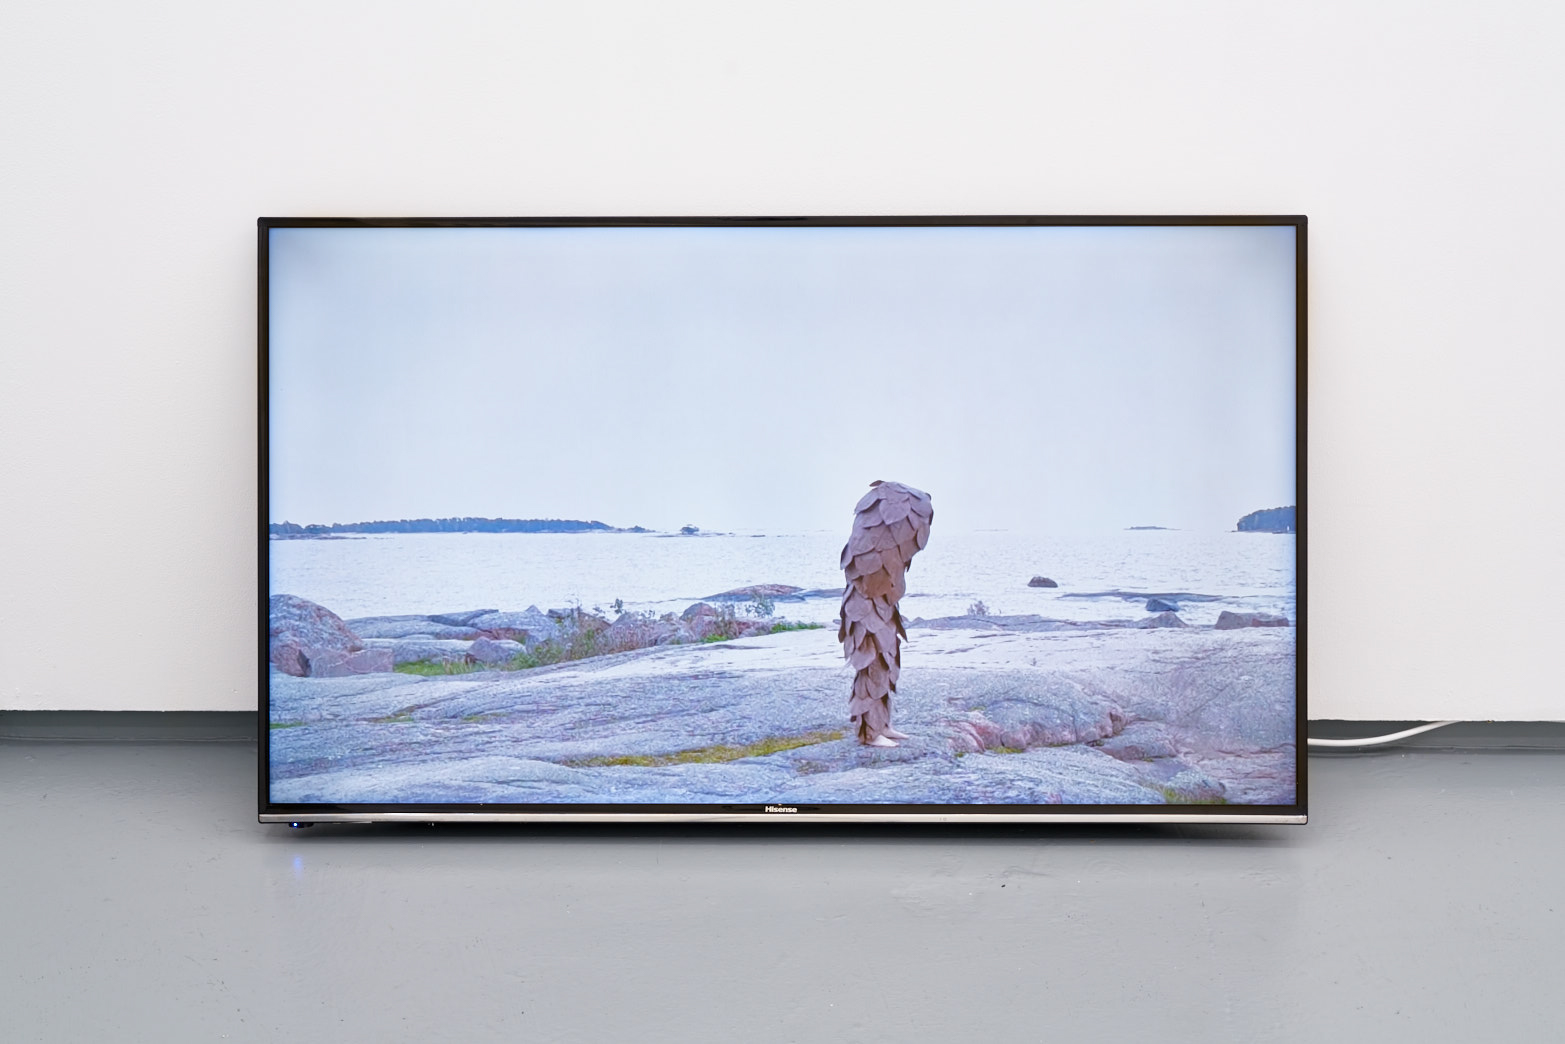 Ingela Ihrman, När inlandsisen dragit sig tillbaka från Sverige vandrade granen in ifrån norr. (When the inland ice pulled back from Sweden, the fir migrated from the north.), 2015, Documentation of performance in fir cone costume